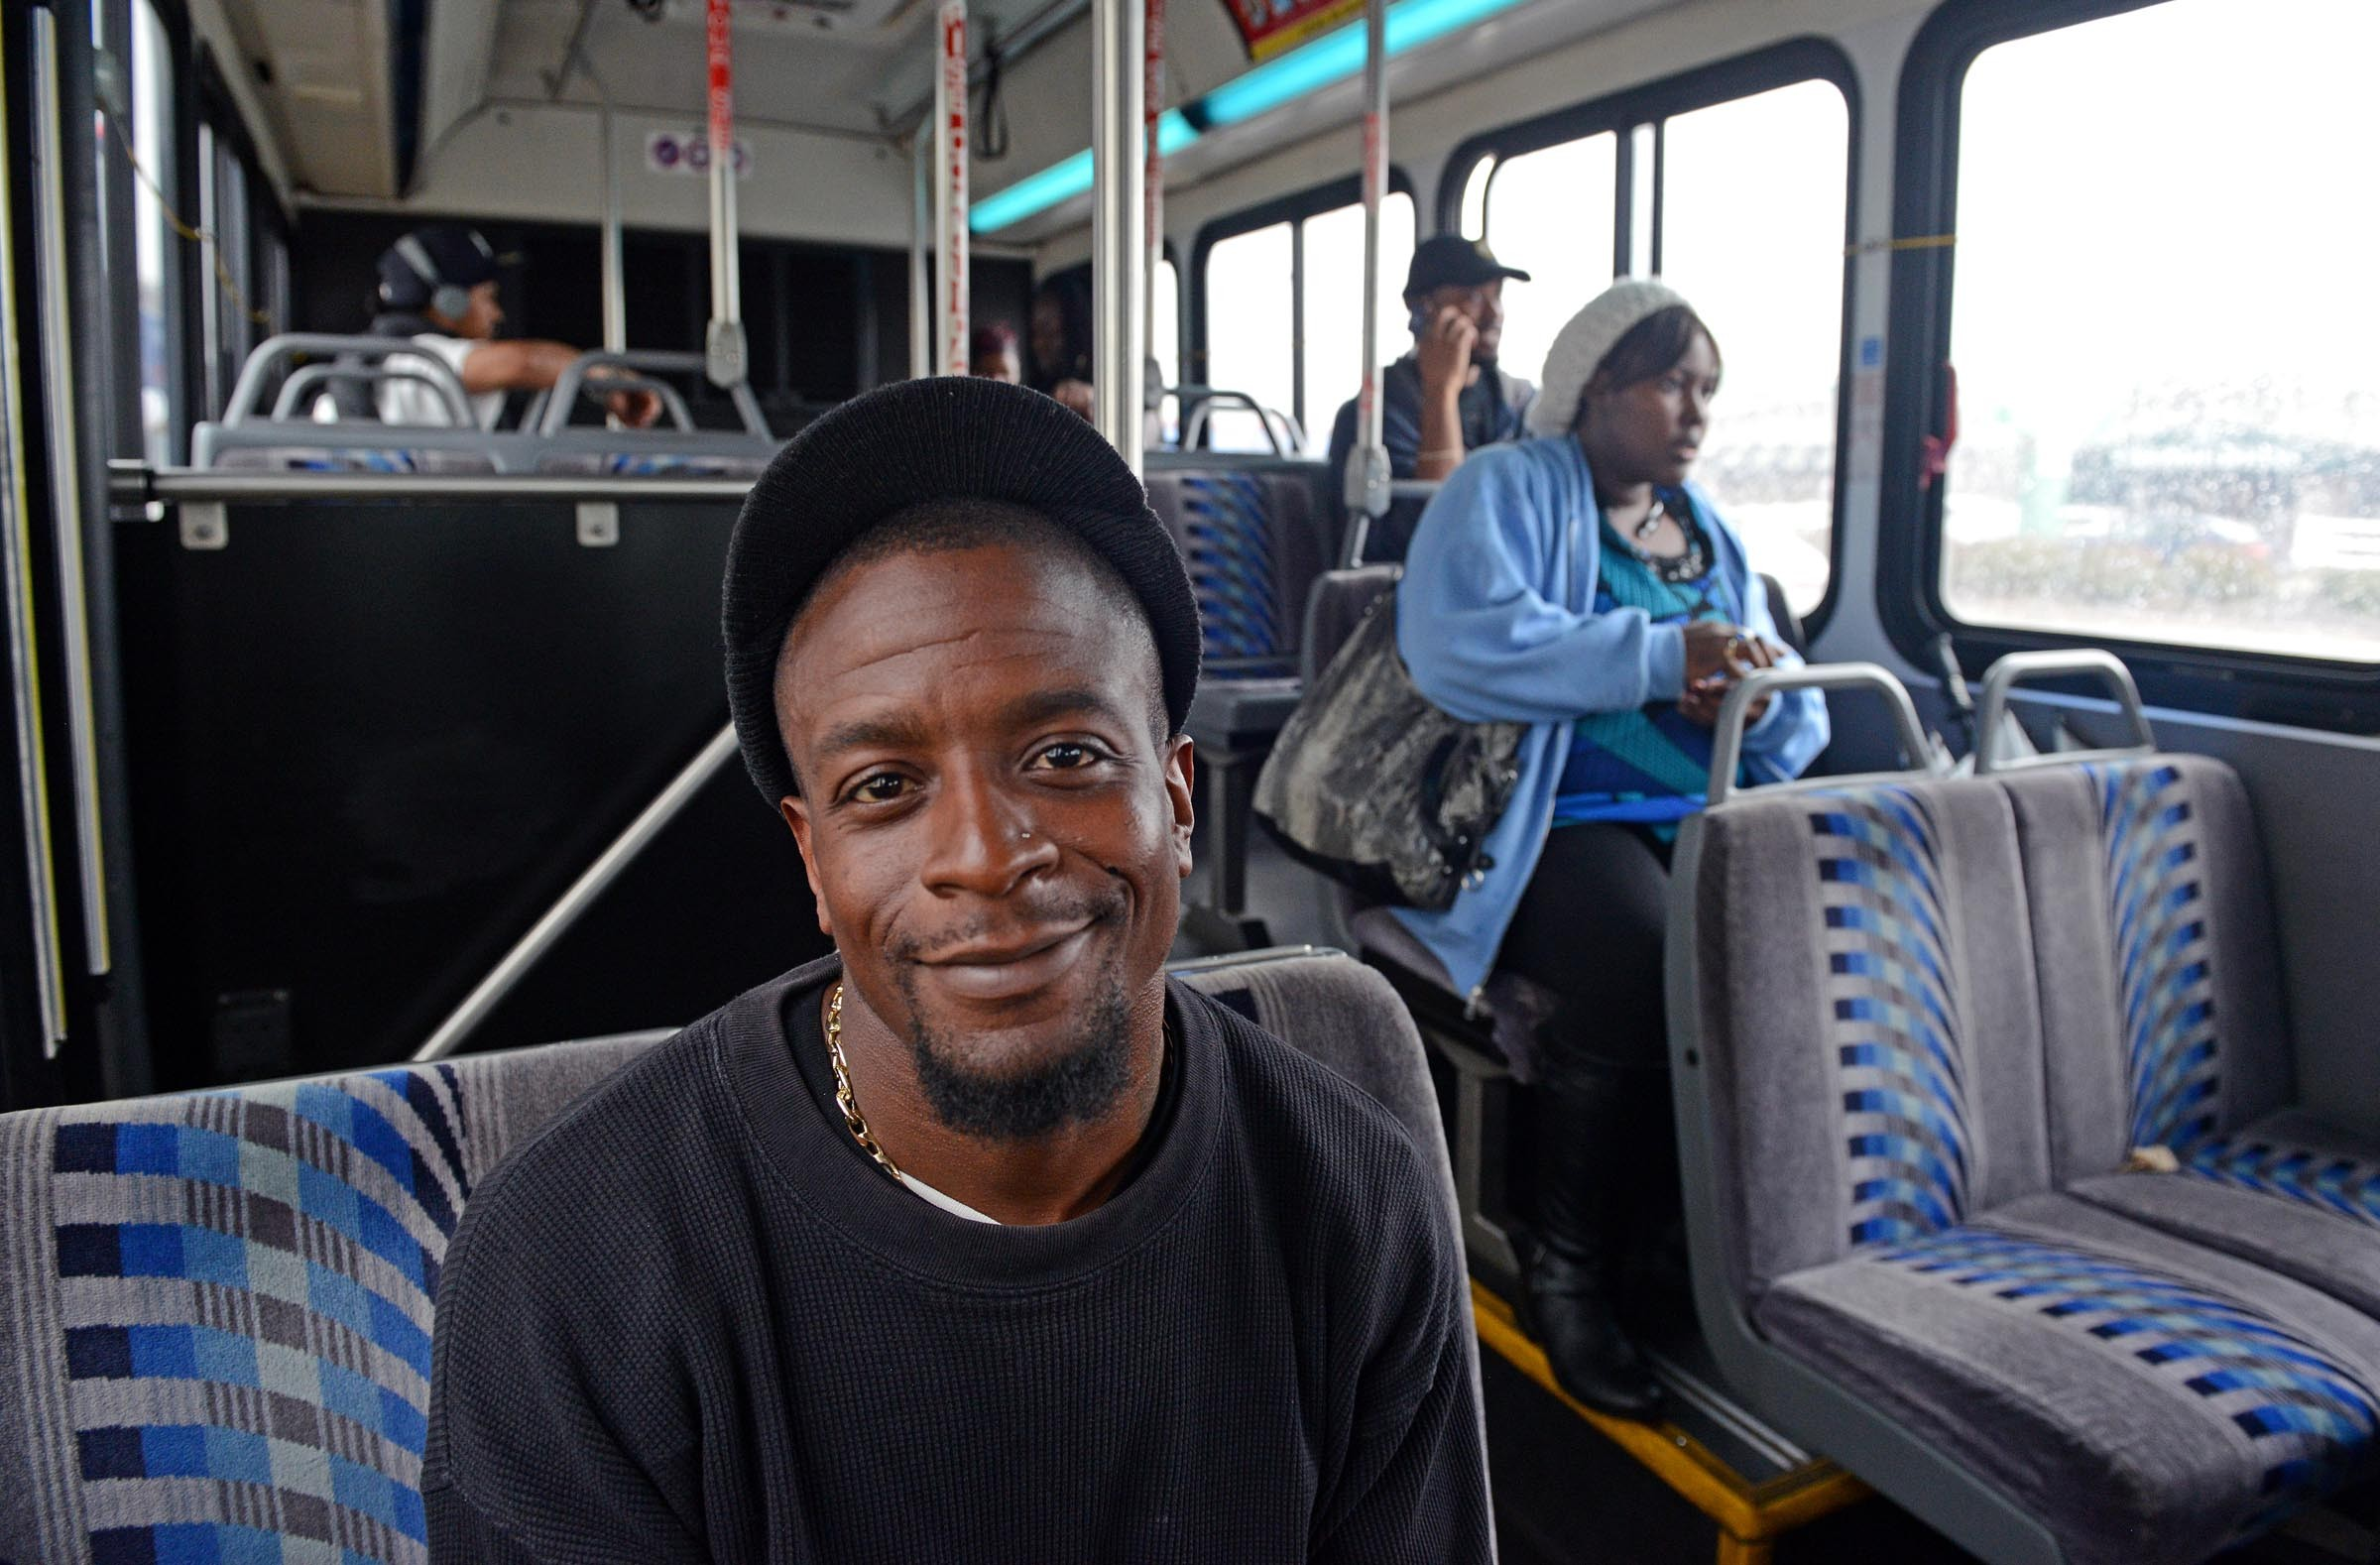 Travis Bradley rides the No. Six to get home from a construction job. He likes the idea of upgraded service, he says, but thinks that GRTC should put a higher priority on expanding service elsewhere before focusing on a route that's already well-served. - SCOTT ELMQUIST